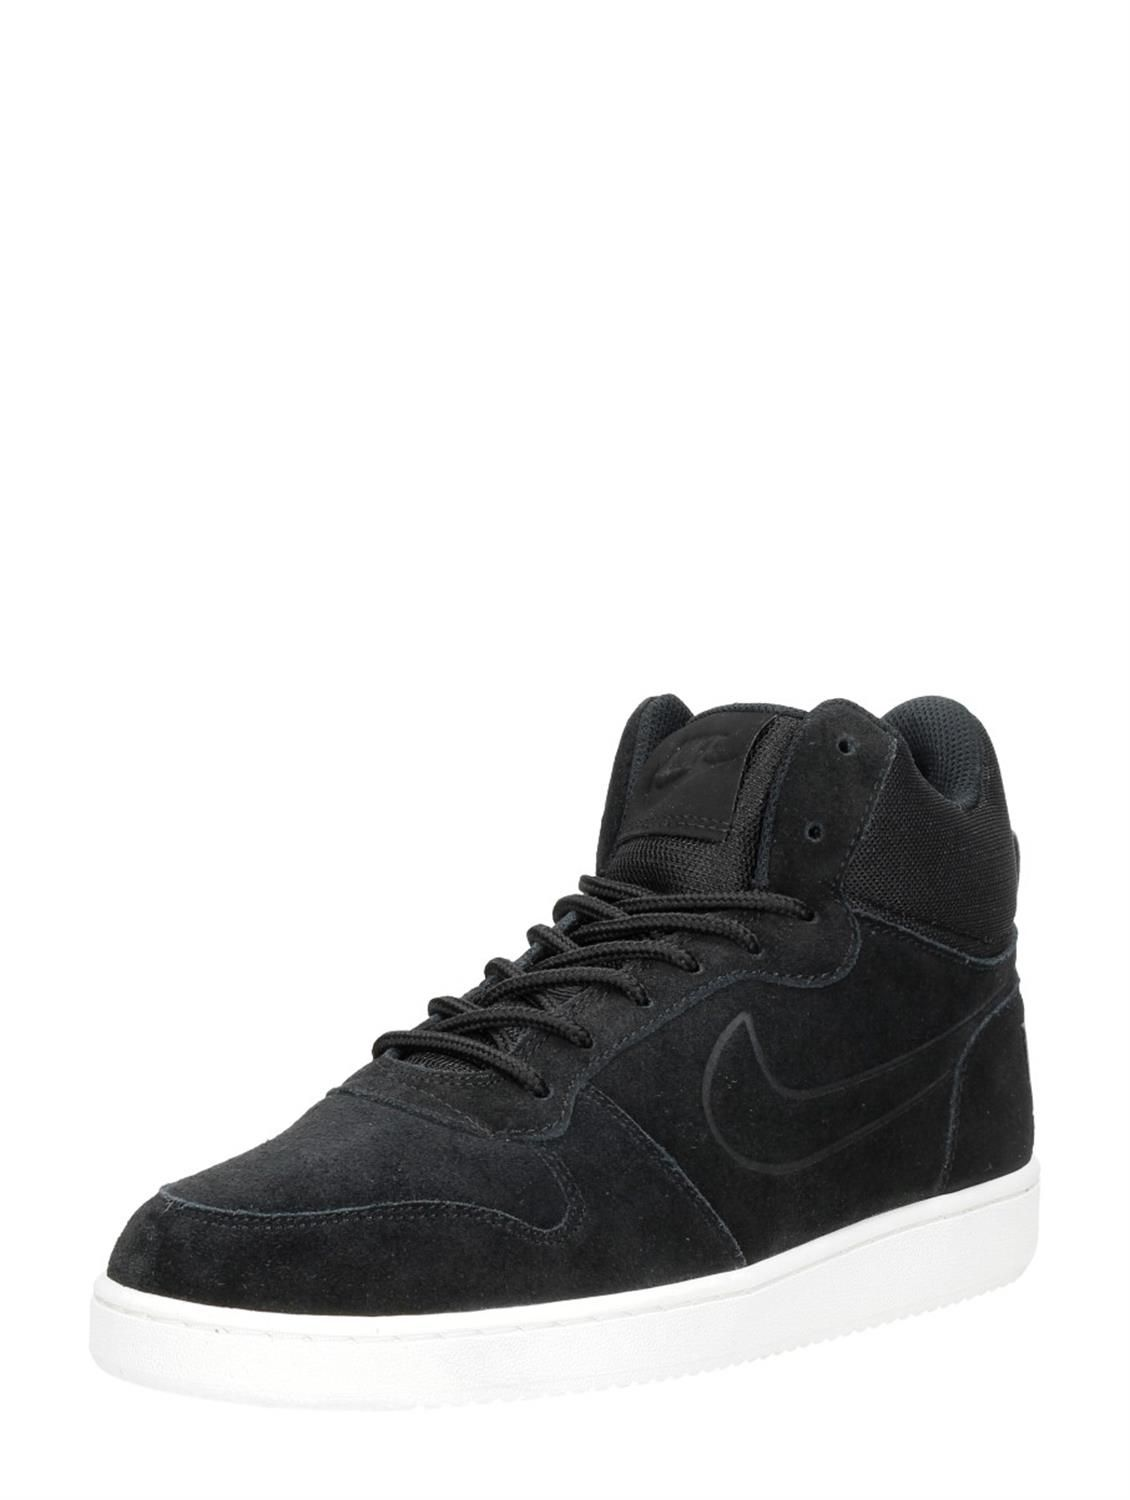 Sneakers Premium Nike Borough Court Hoge Heren Zwart Mid UwwYx